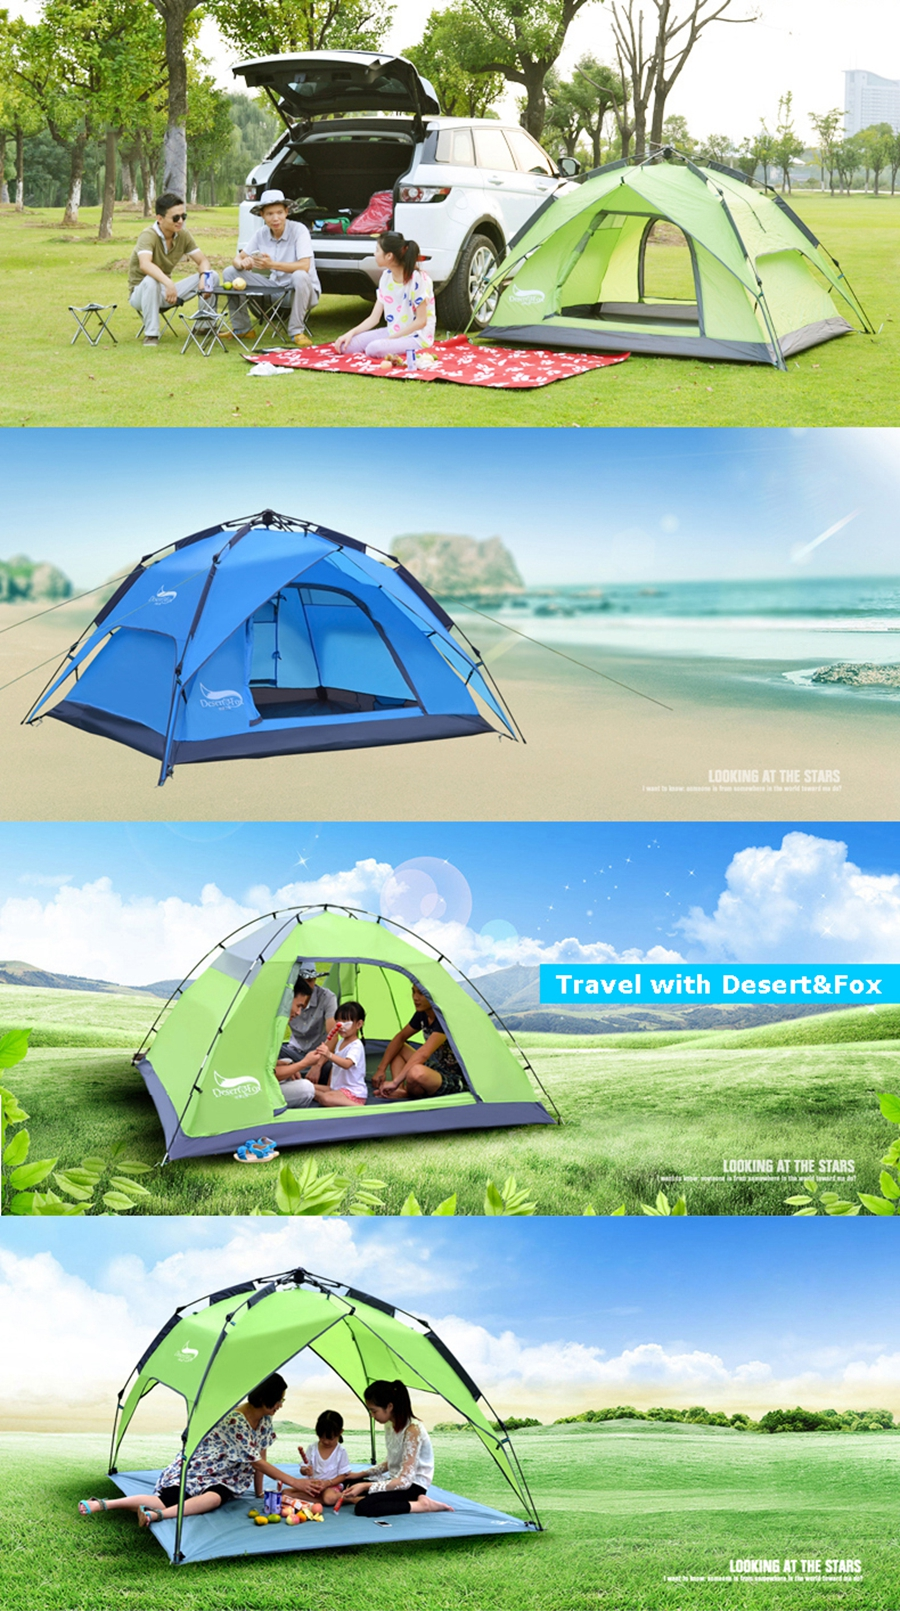 Desert&Fox Automatic Camping Tent, 3-4 Person Family Tent Double Layer Instant Setup Protable Backpacking Tent for Hiking Travel 3